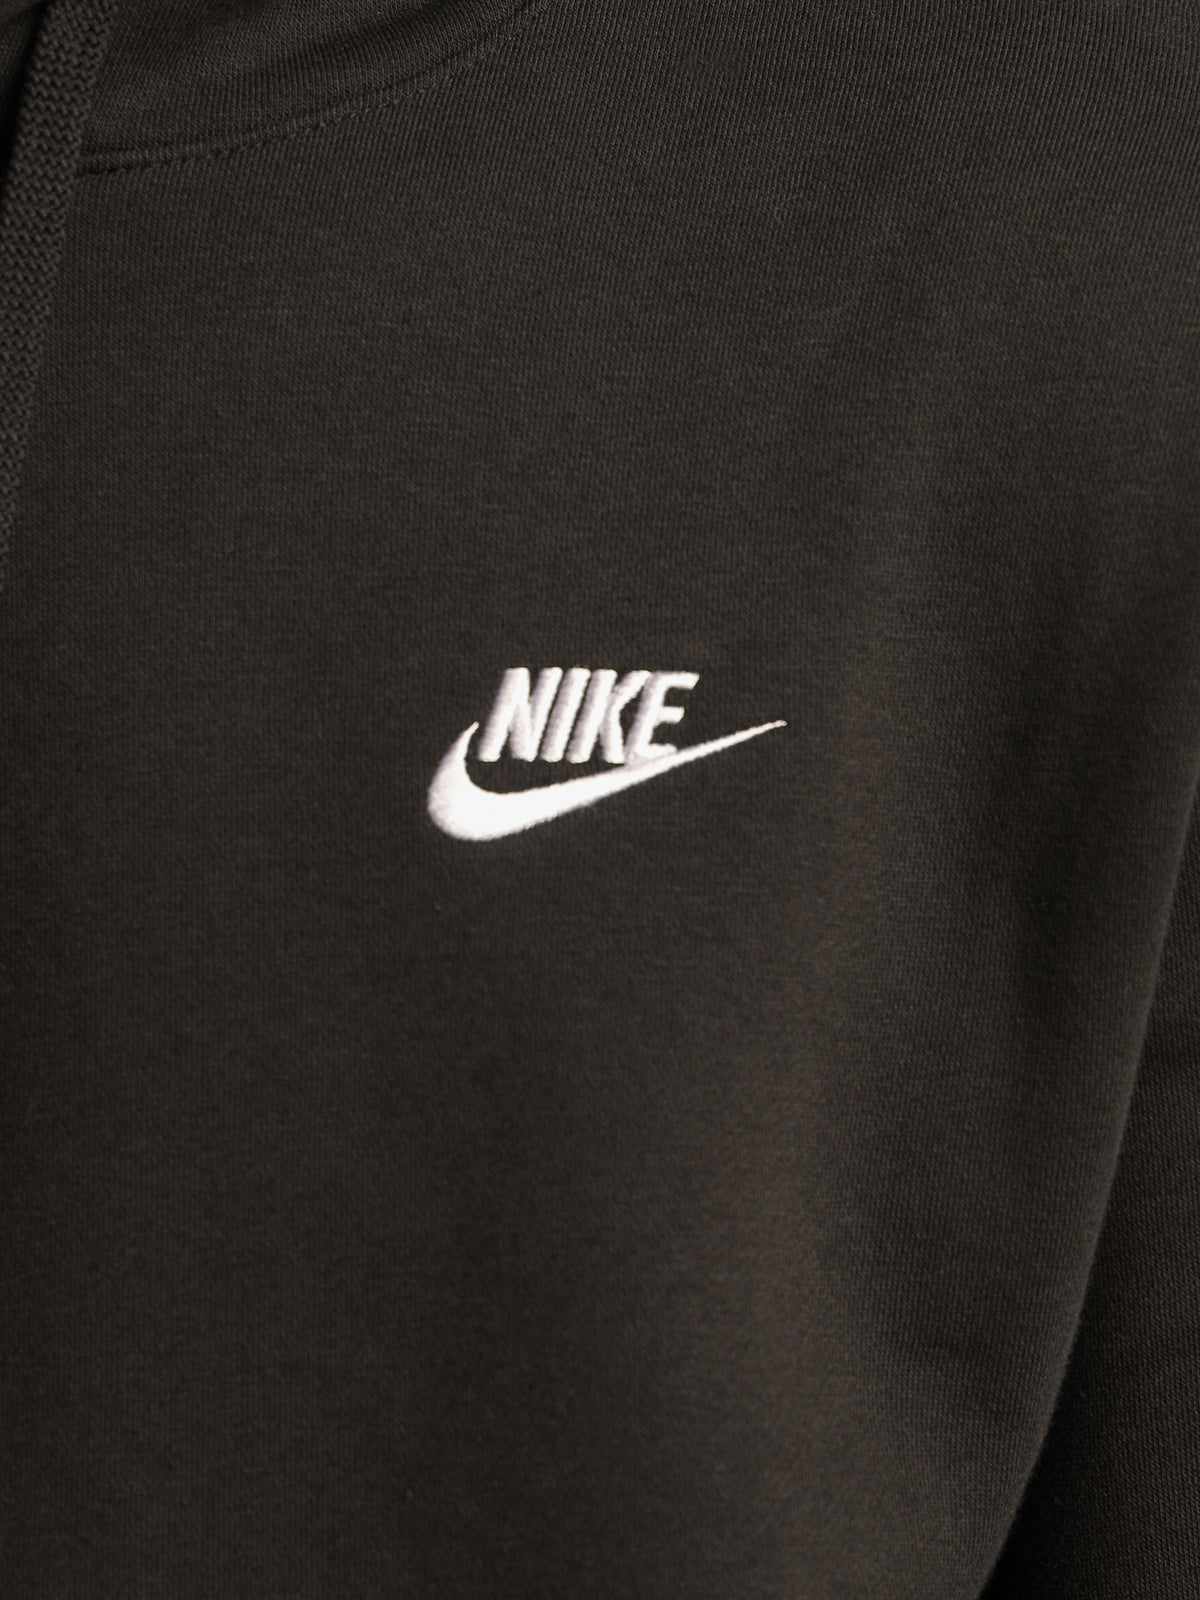 NSW Club Hoodie in Black